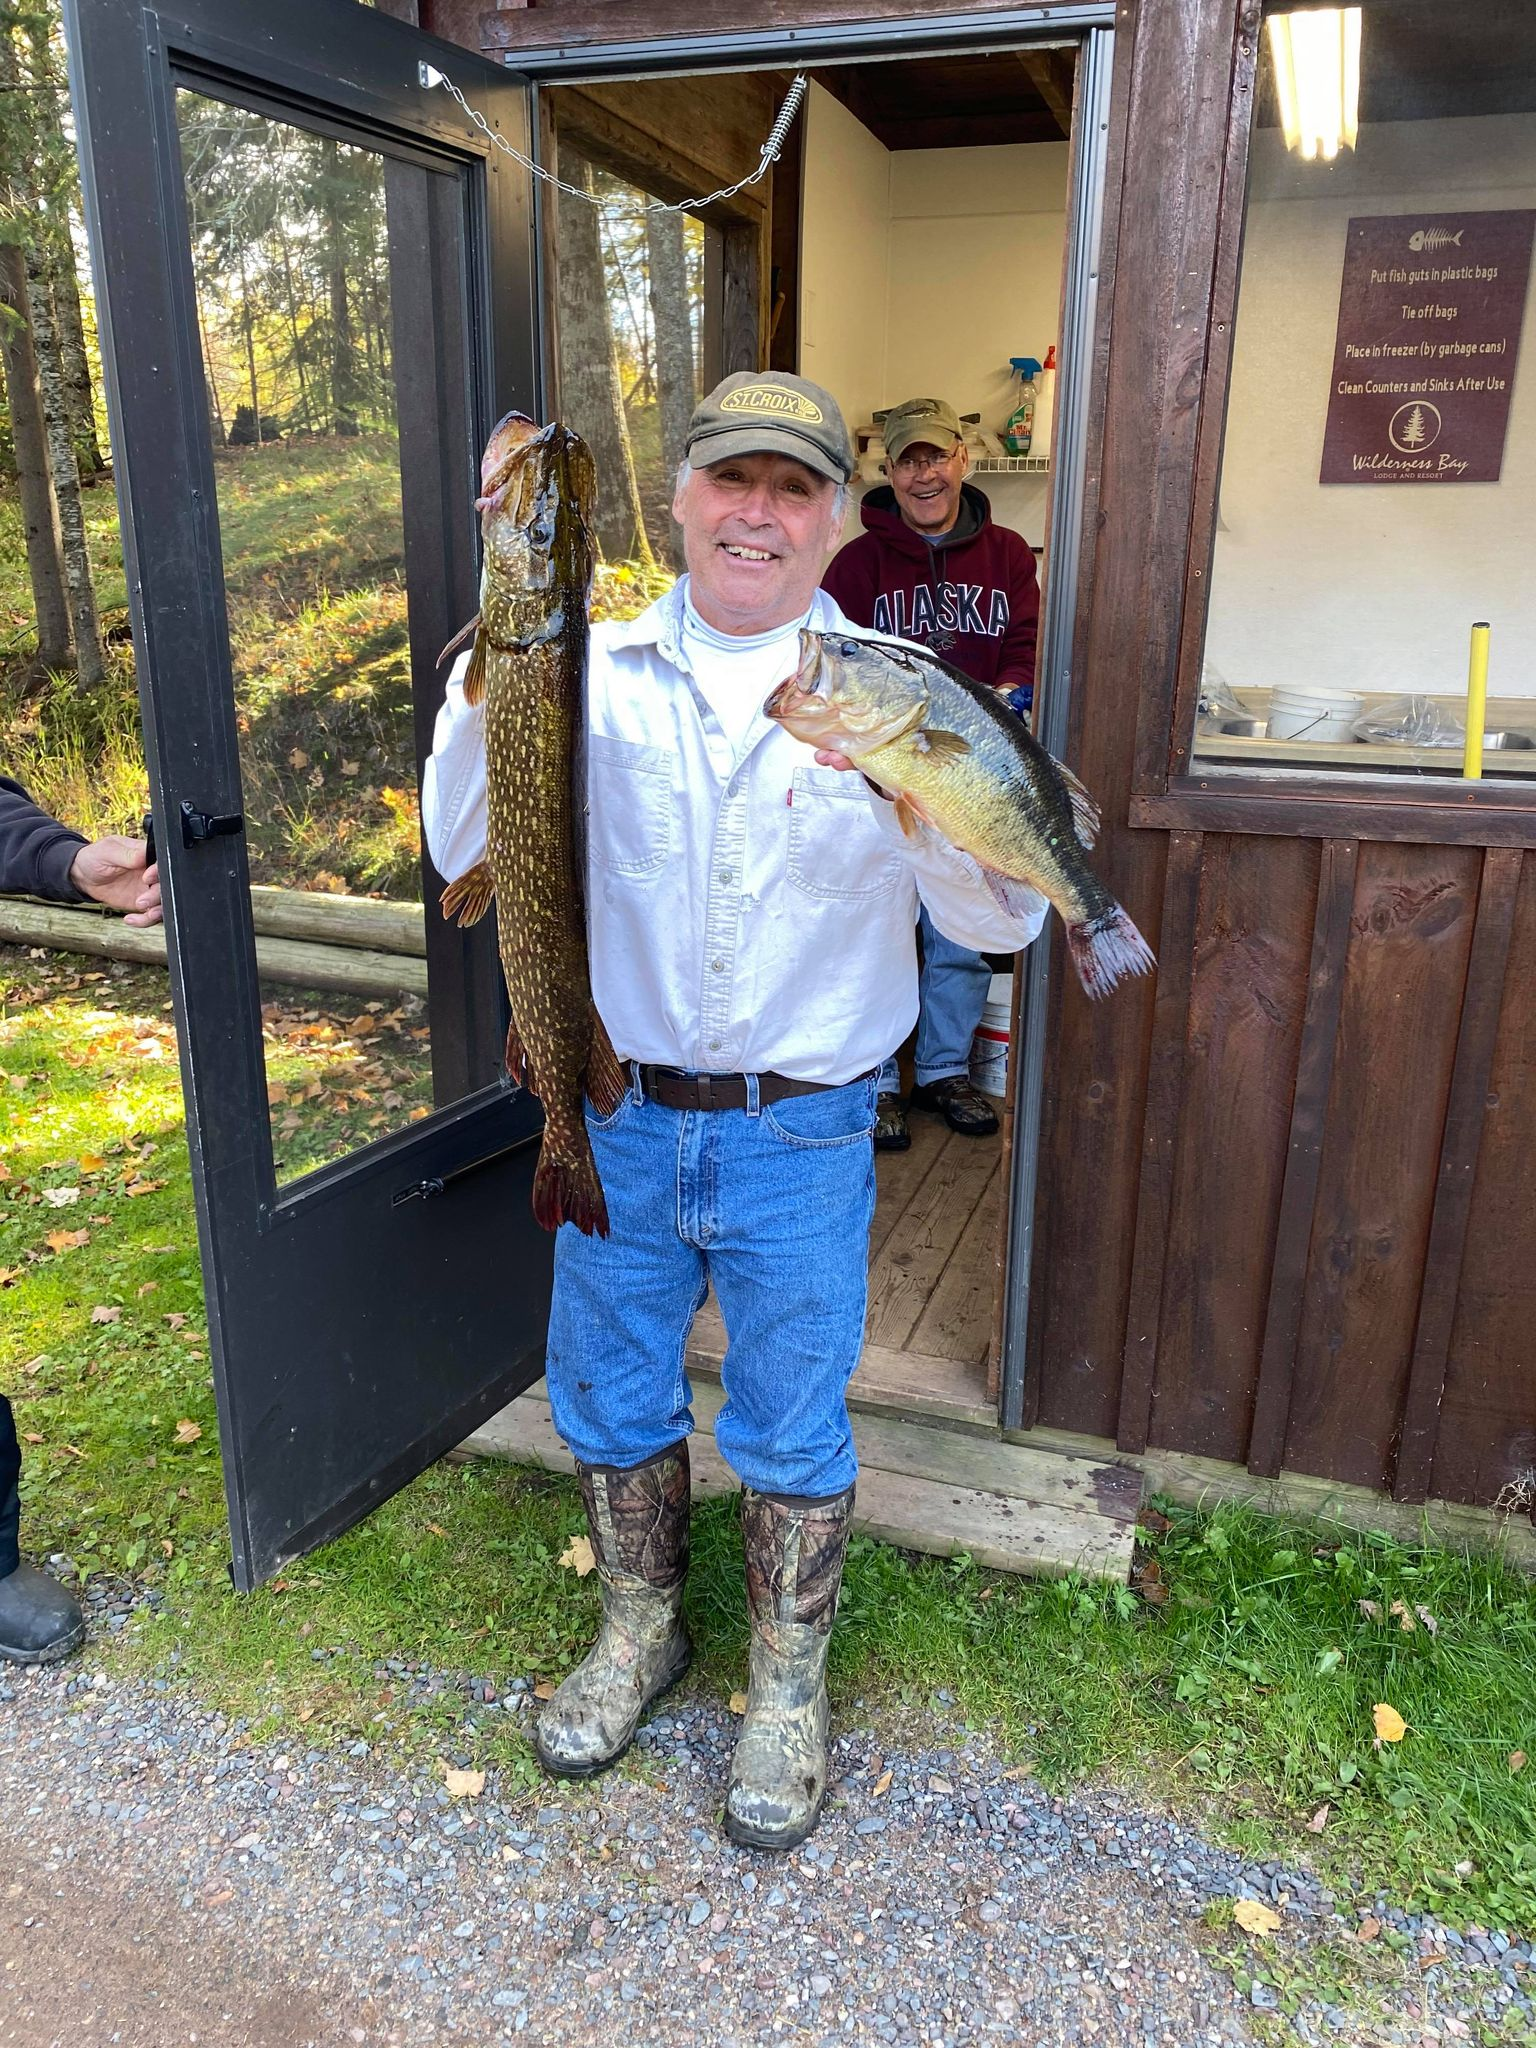 wilderness bay lodge and resort fishing the cisco chain northwoods resort